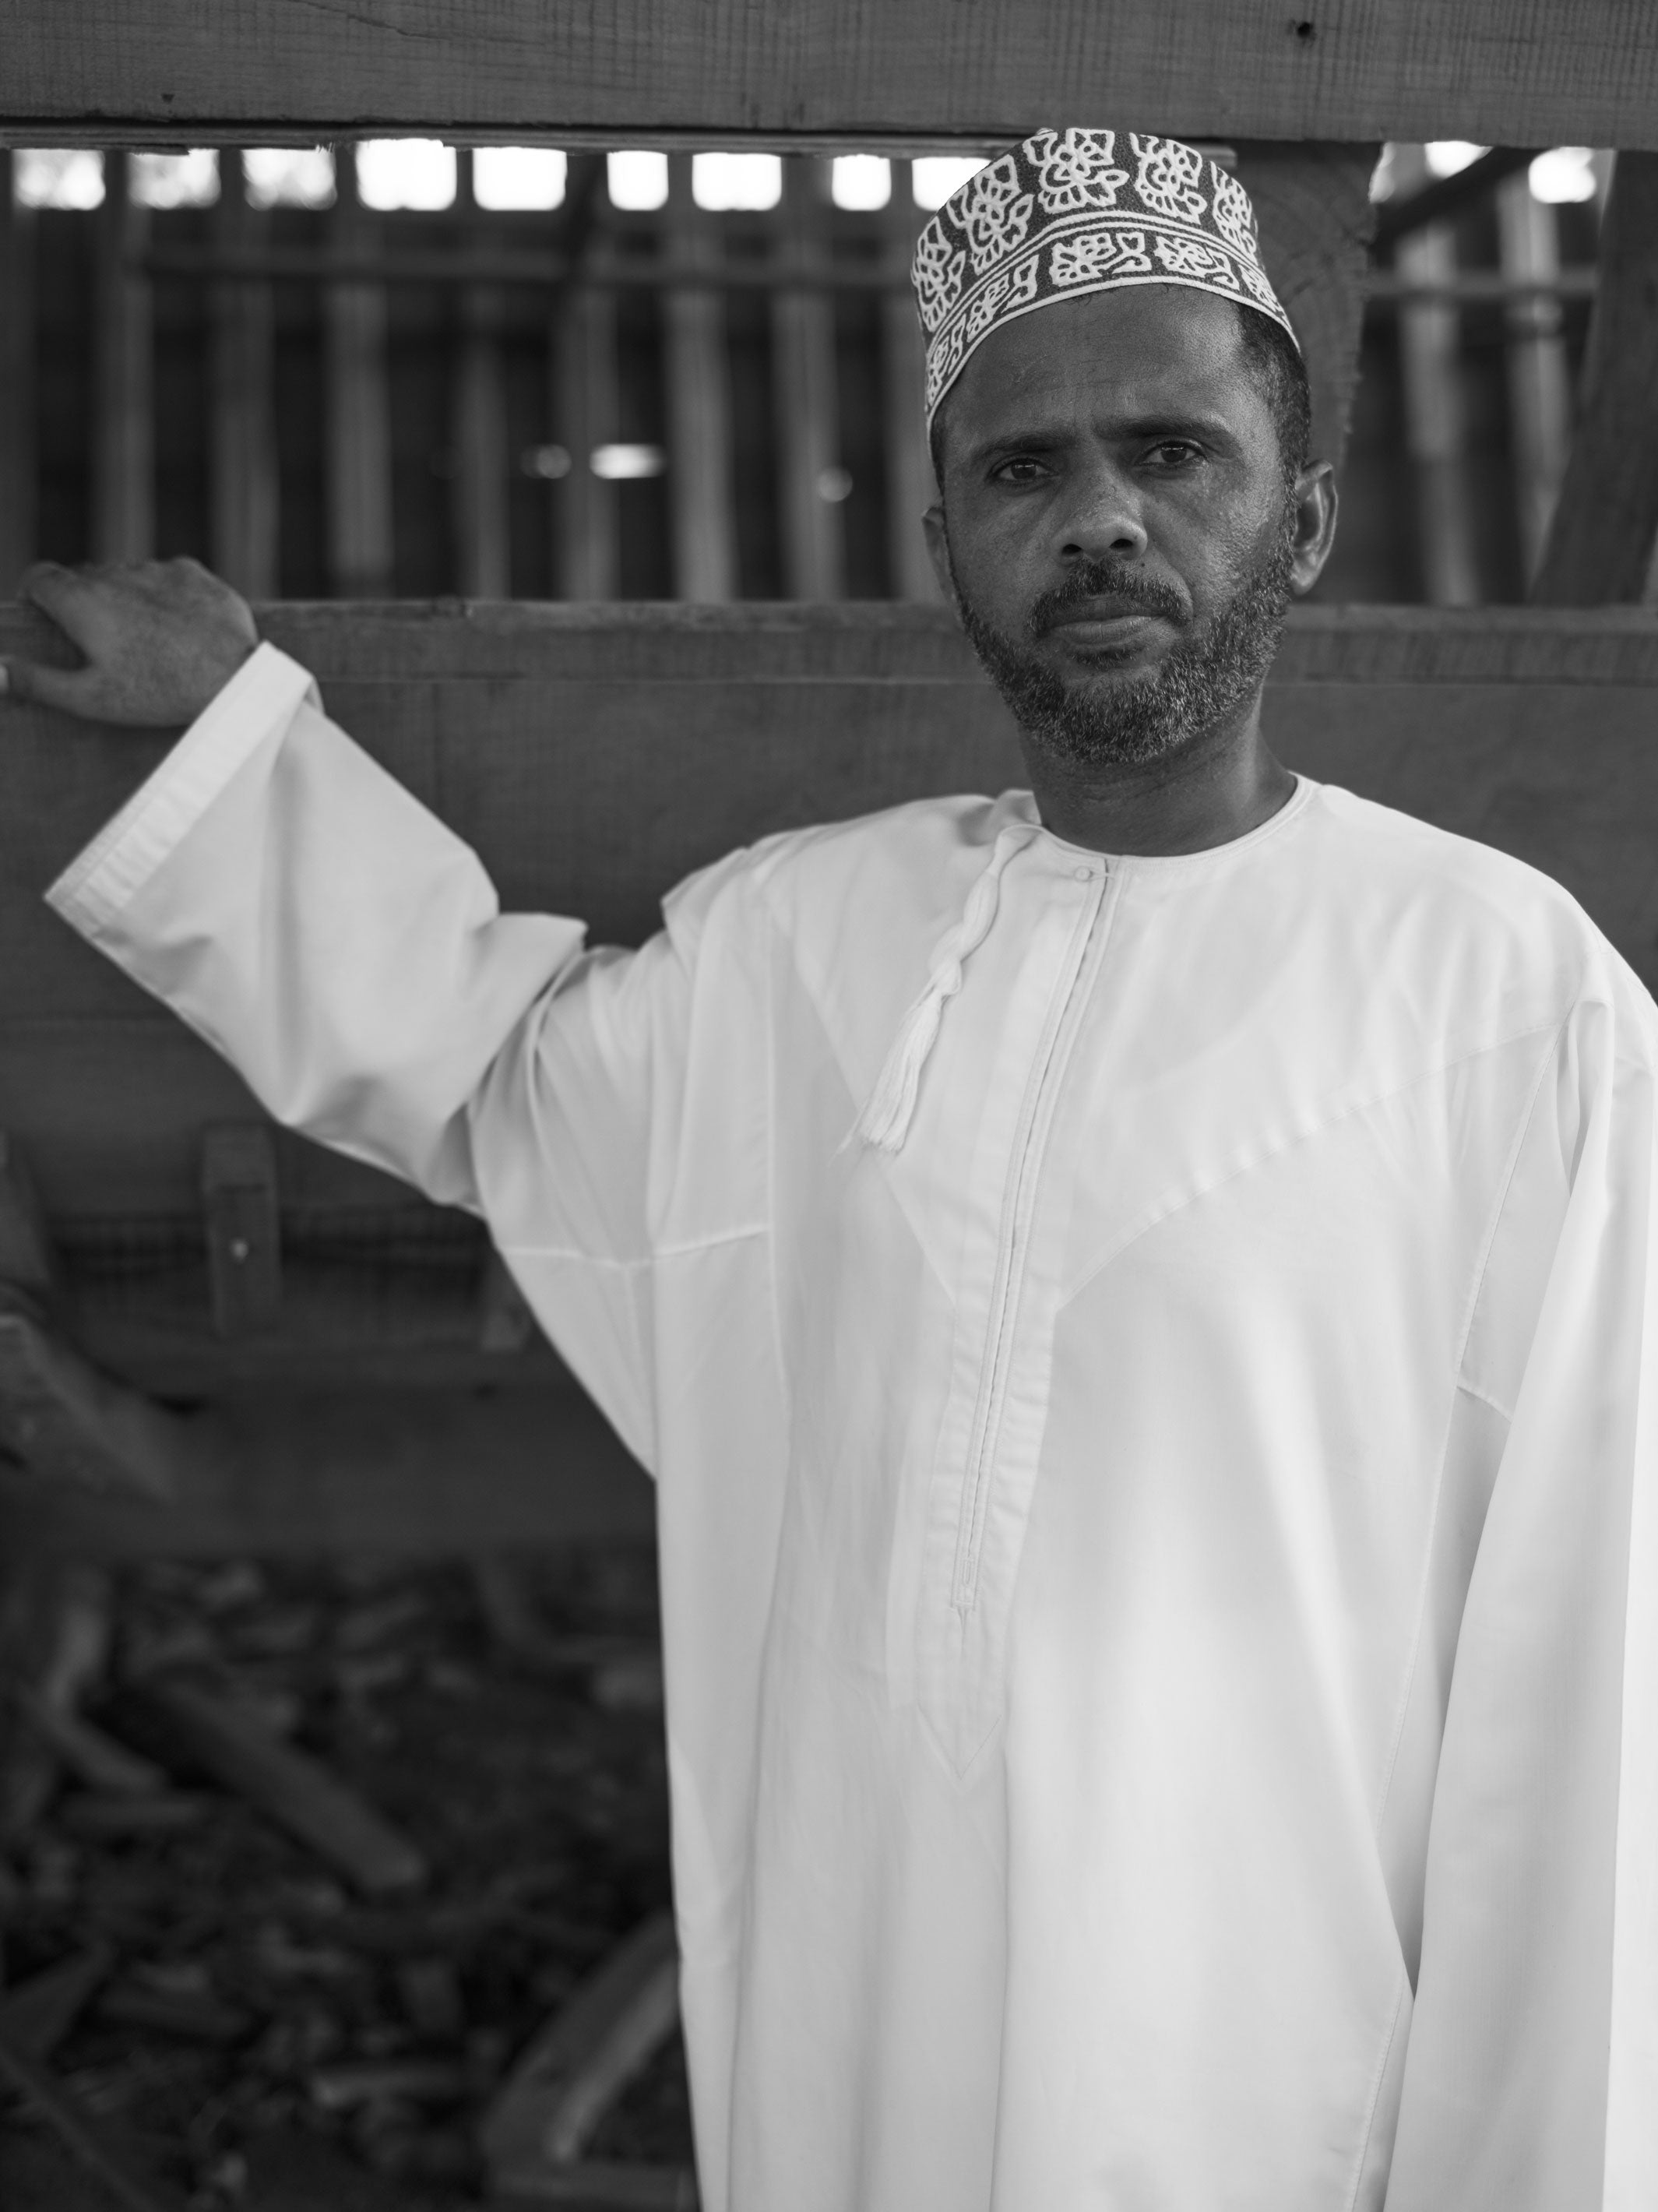 Portrait Of Riffian Self Sustainable Farmer Abdusalam | Stories + Objects Global Traveler Magazine